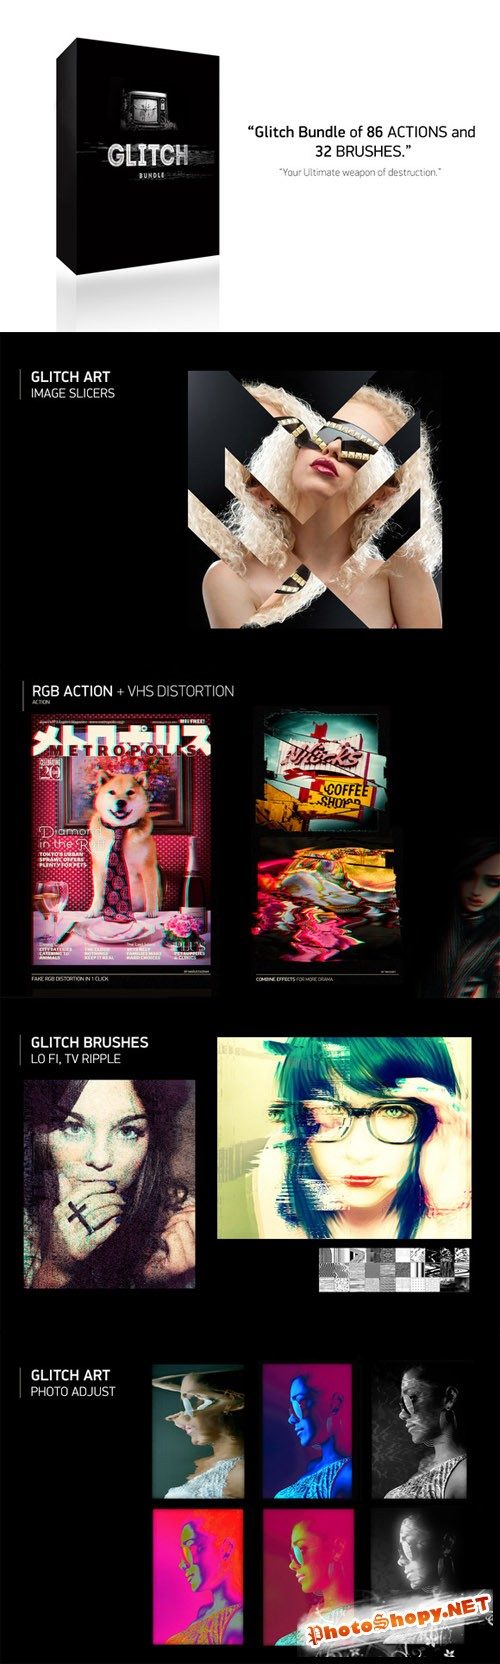 Glitch Bundle: 86 Actions + 32 Brush - CM 50828